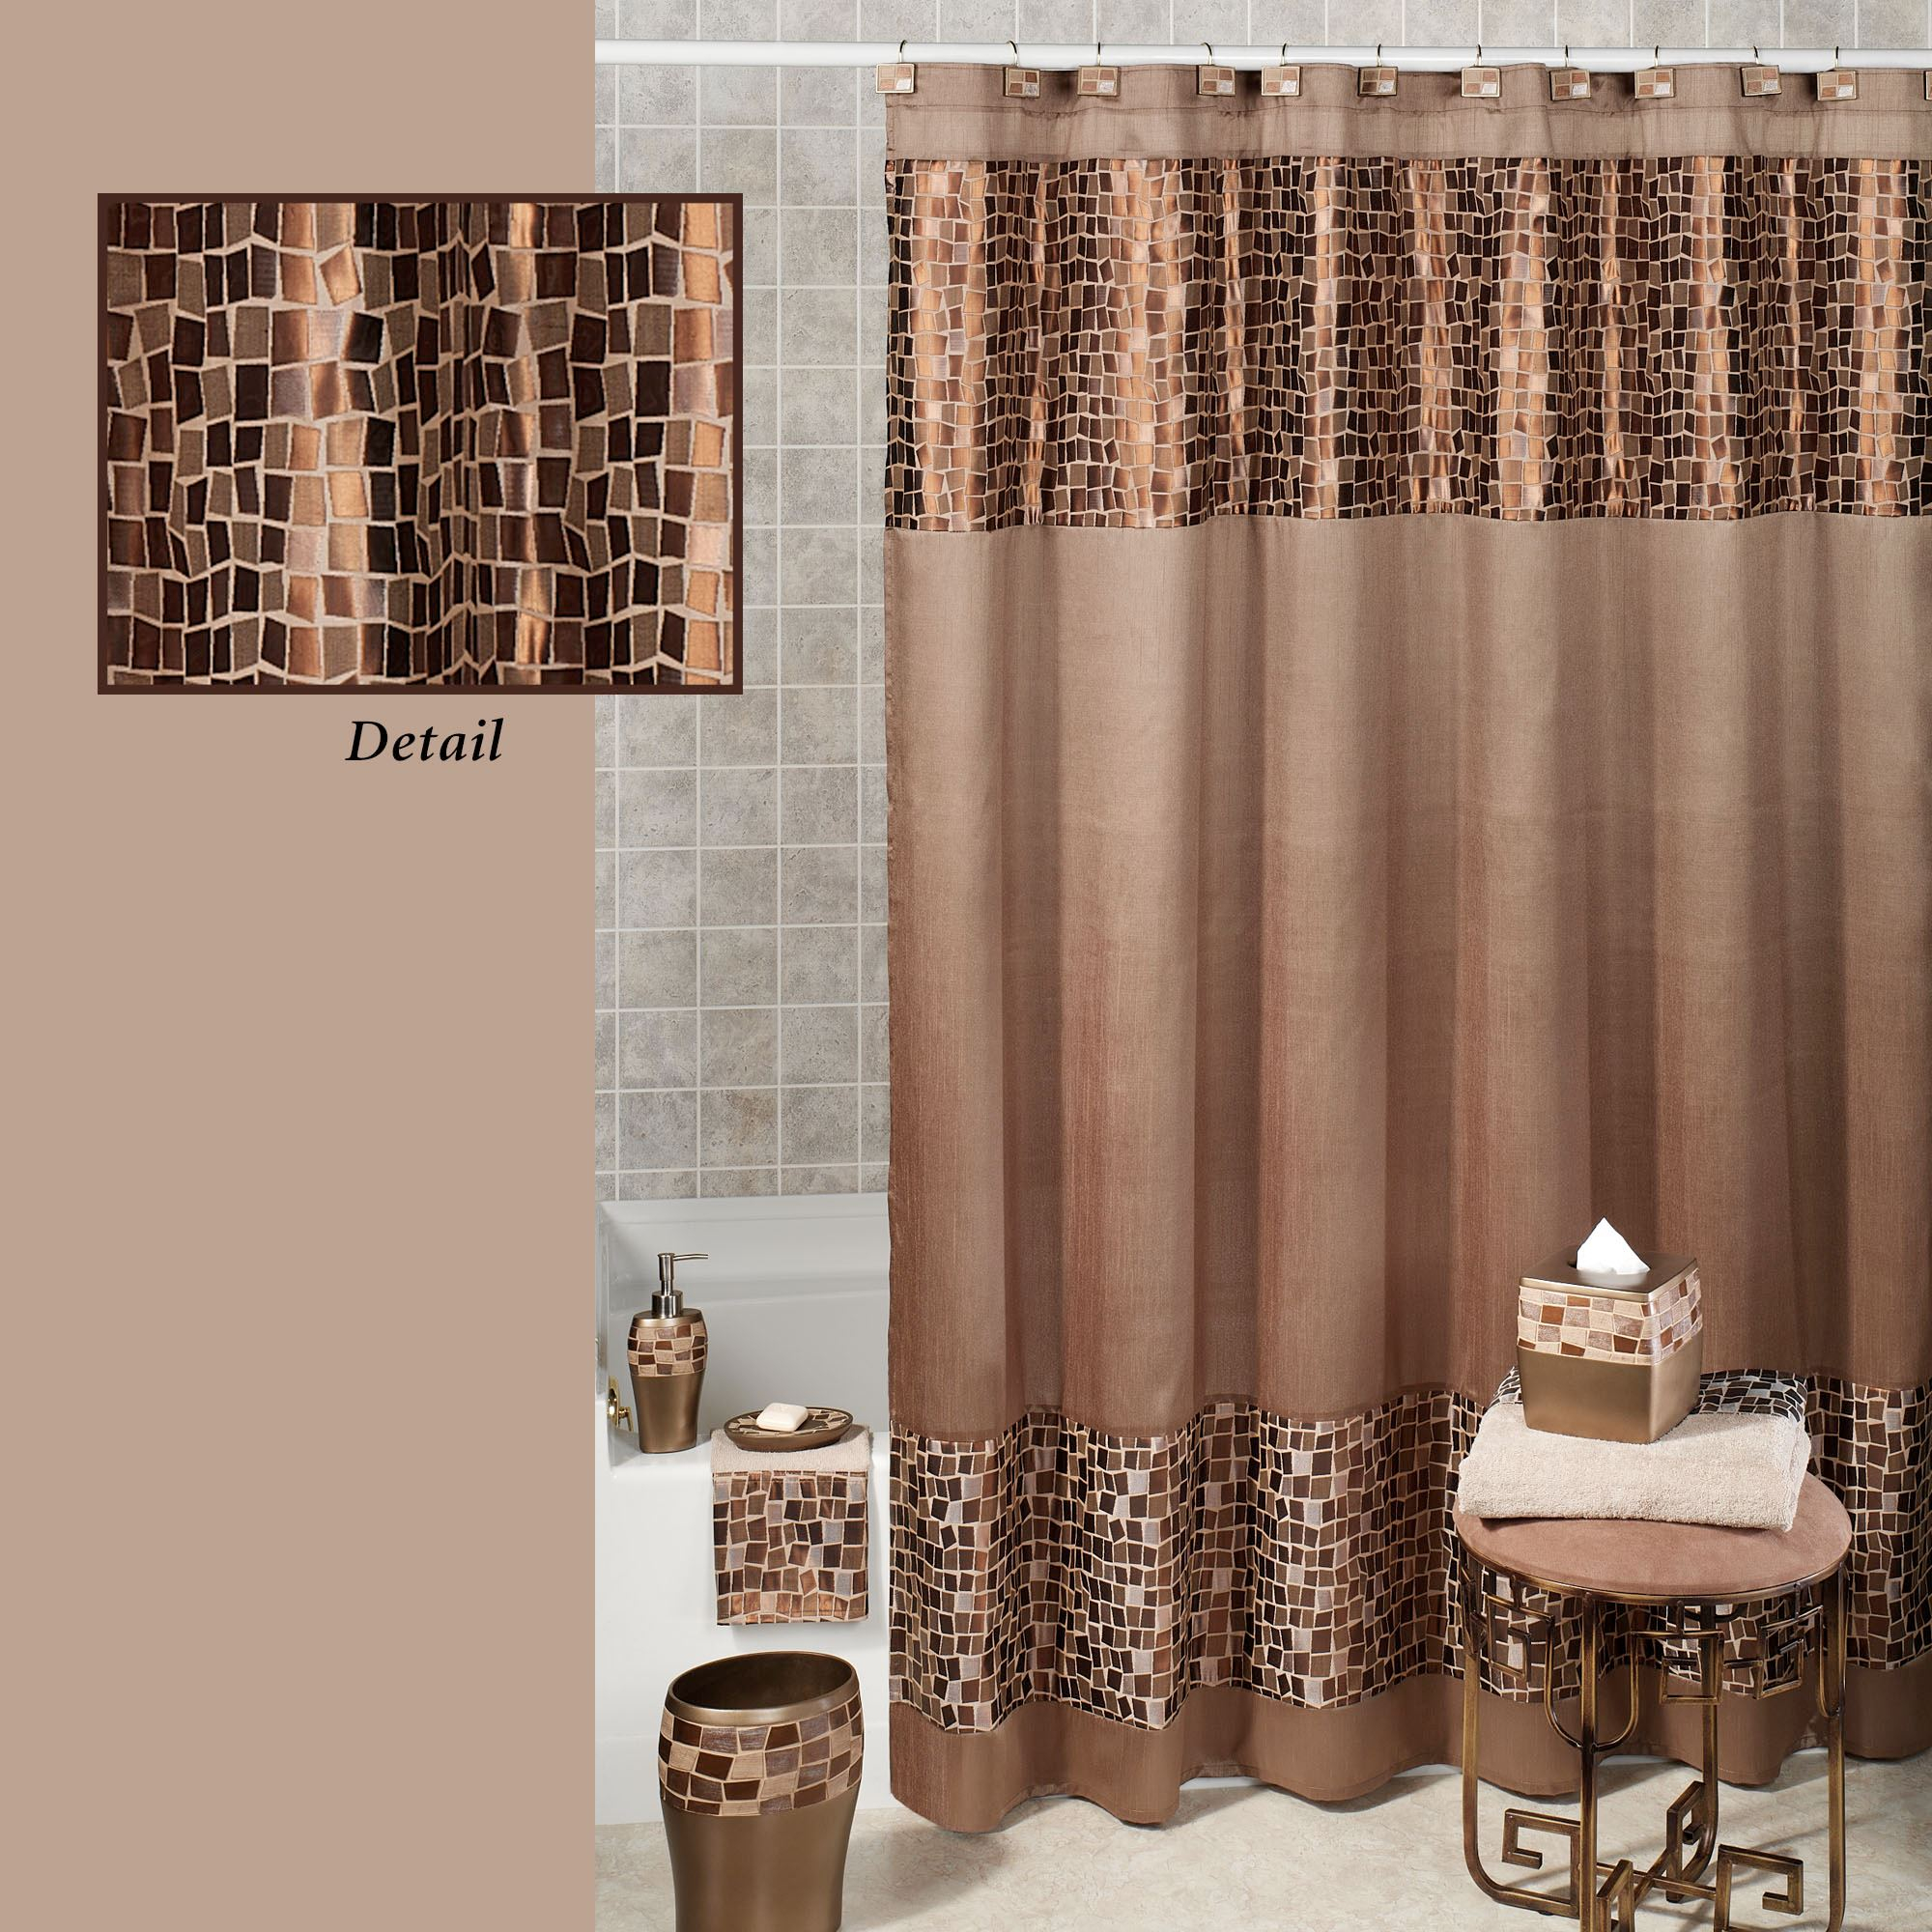 Enchanting Curtain Bathroom Shower Sets Girly Accessories At Regarding Size 2000 X